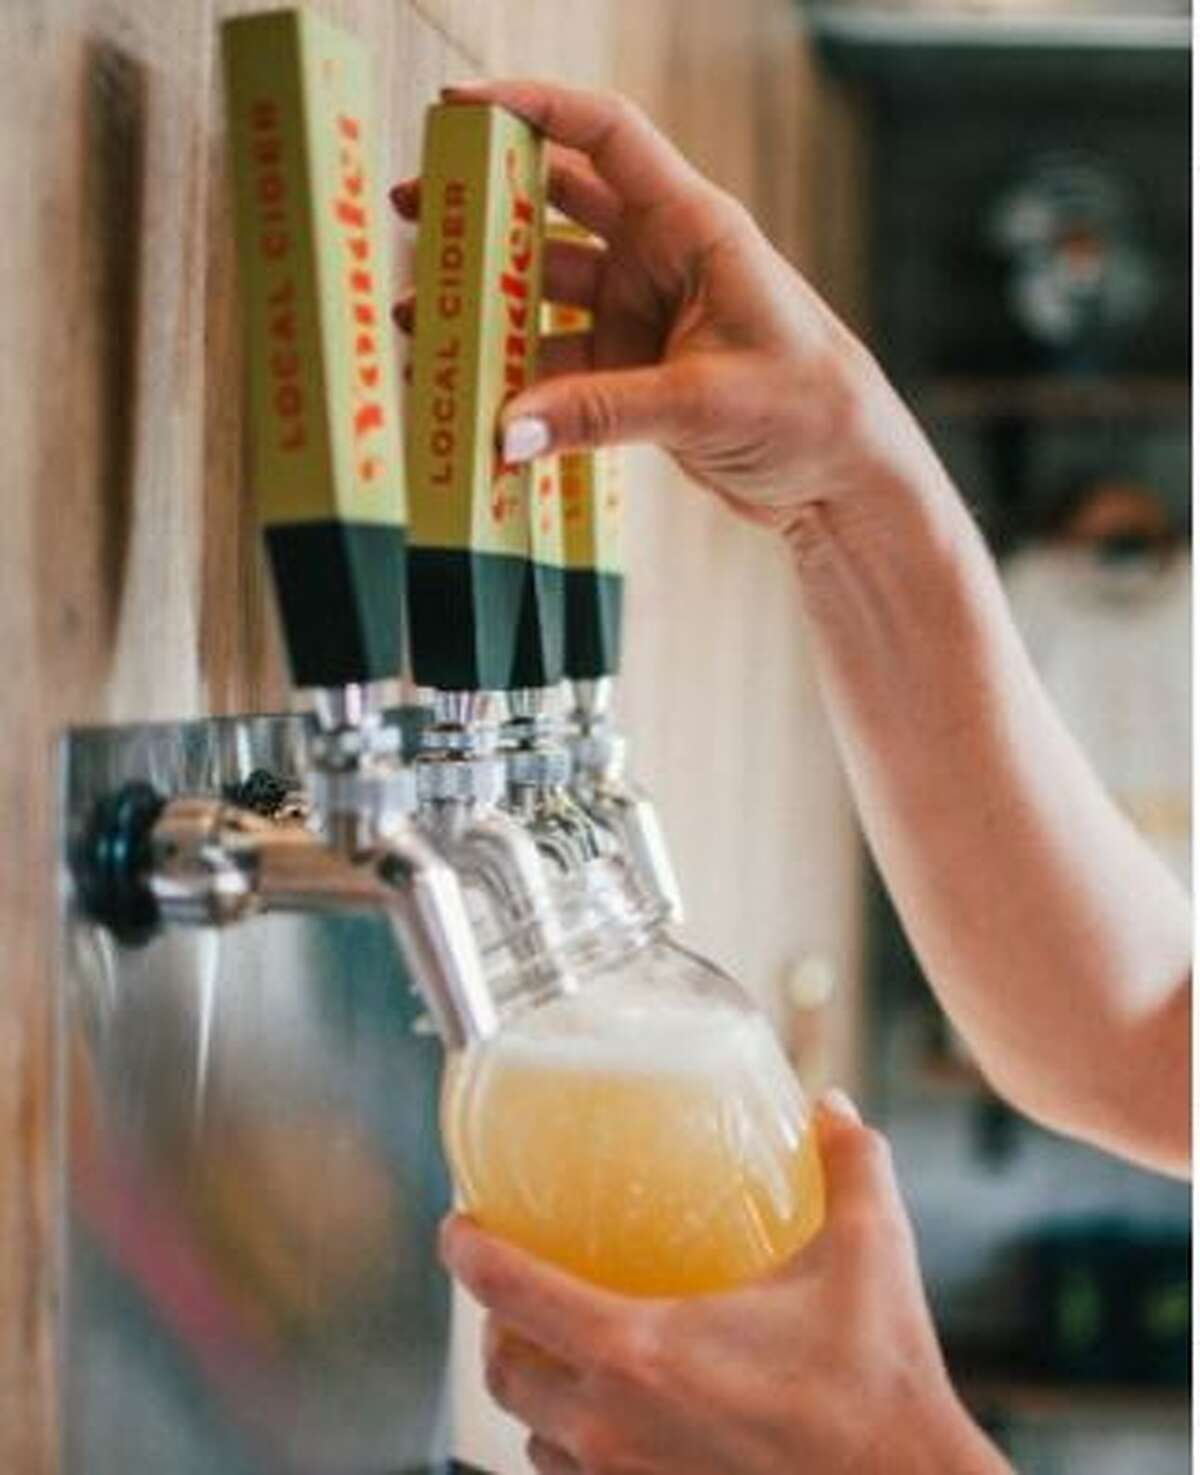 Yonder pours out new craft ciders.